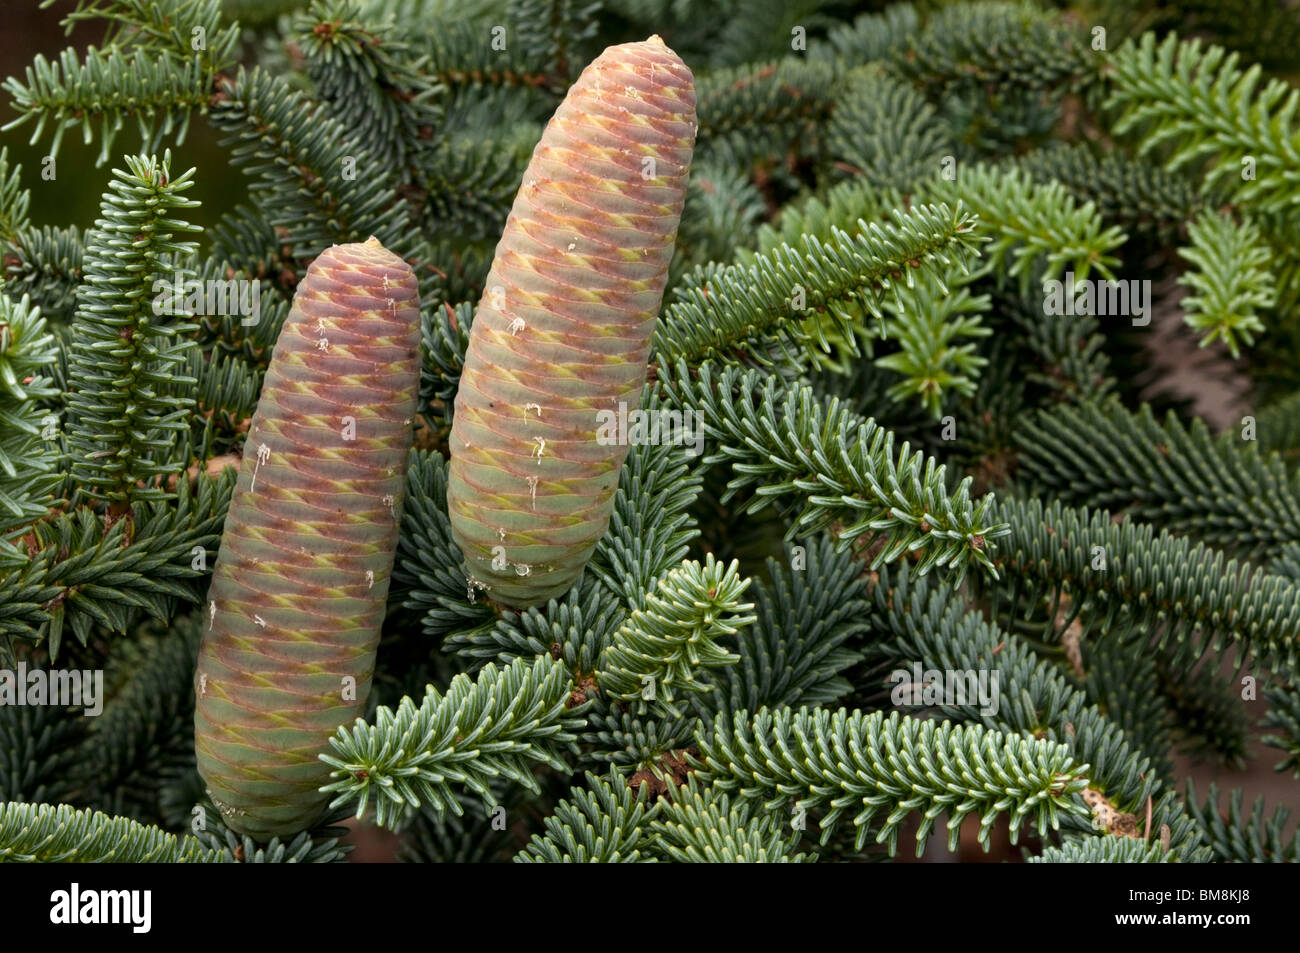 Spanish Fir Abies Pinsapo Twig With Cones Stock Photo 29694512